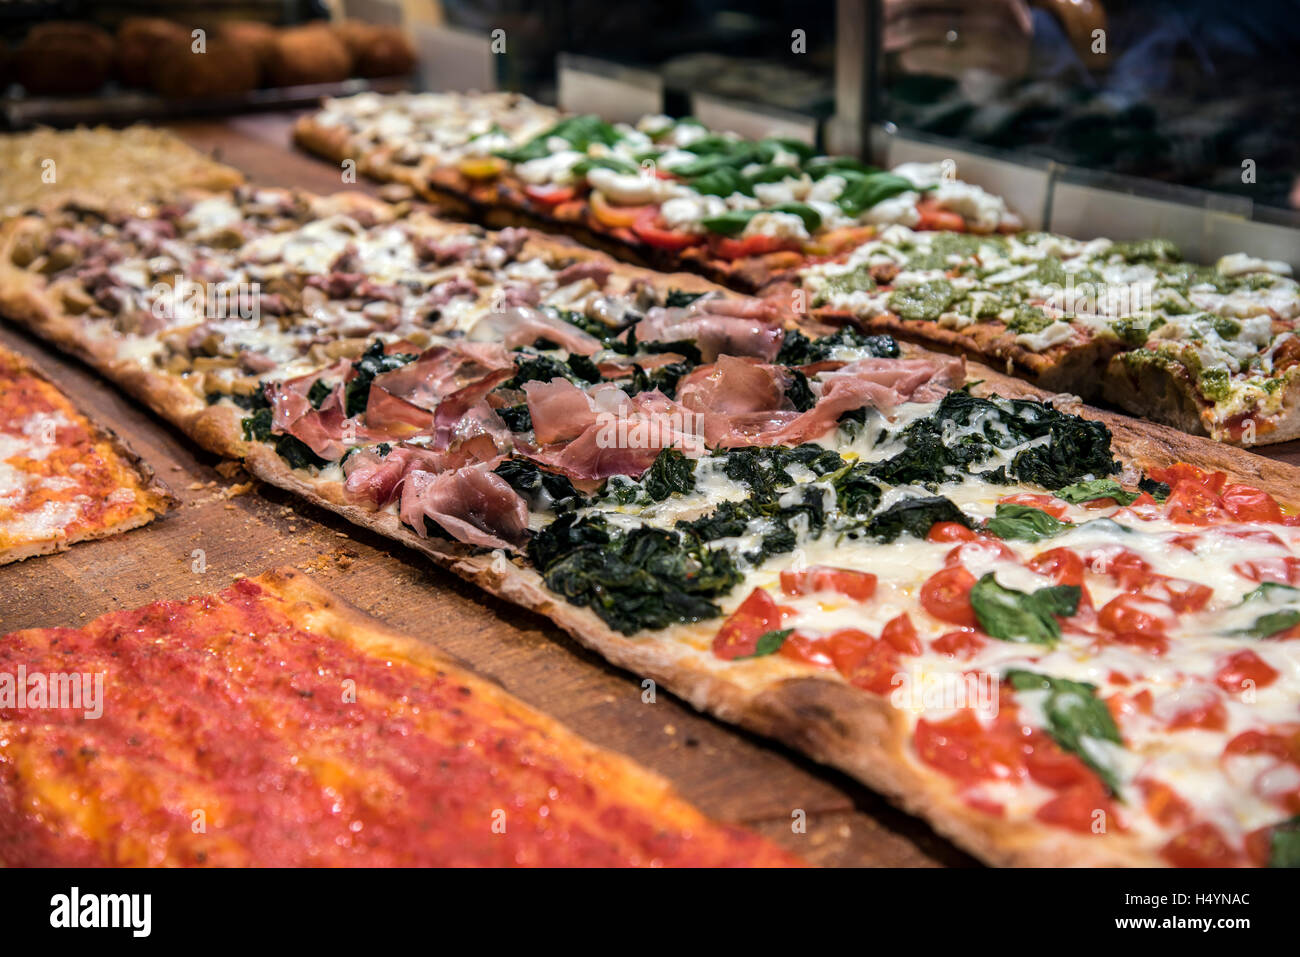 Different varieties of pizza served in a bakery of Trastevere district, Rome, Lazio, Italy - Stock Image